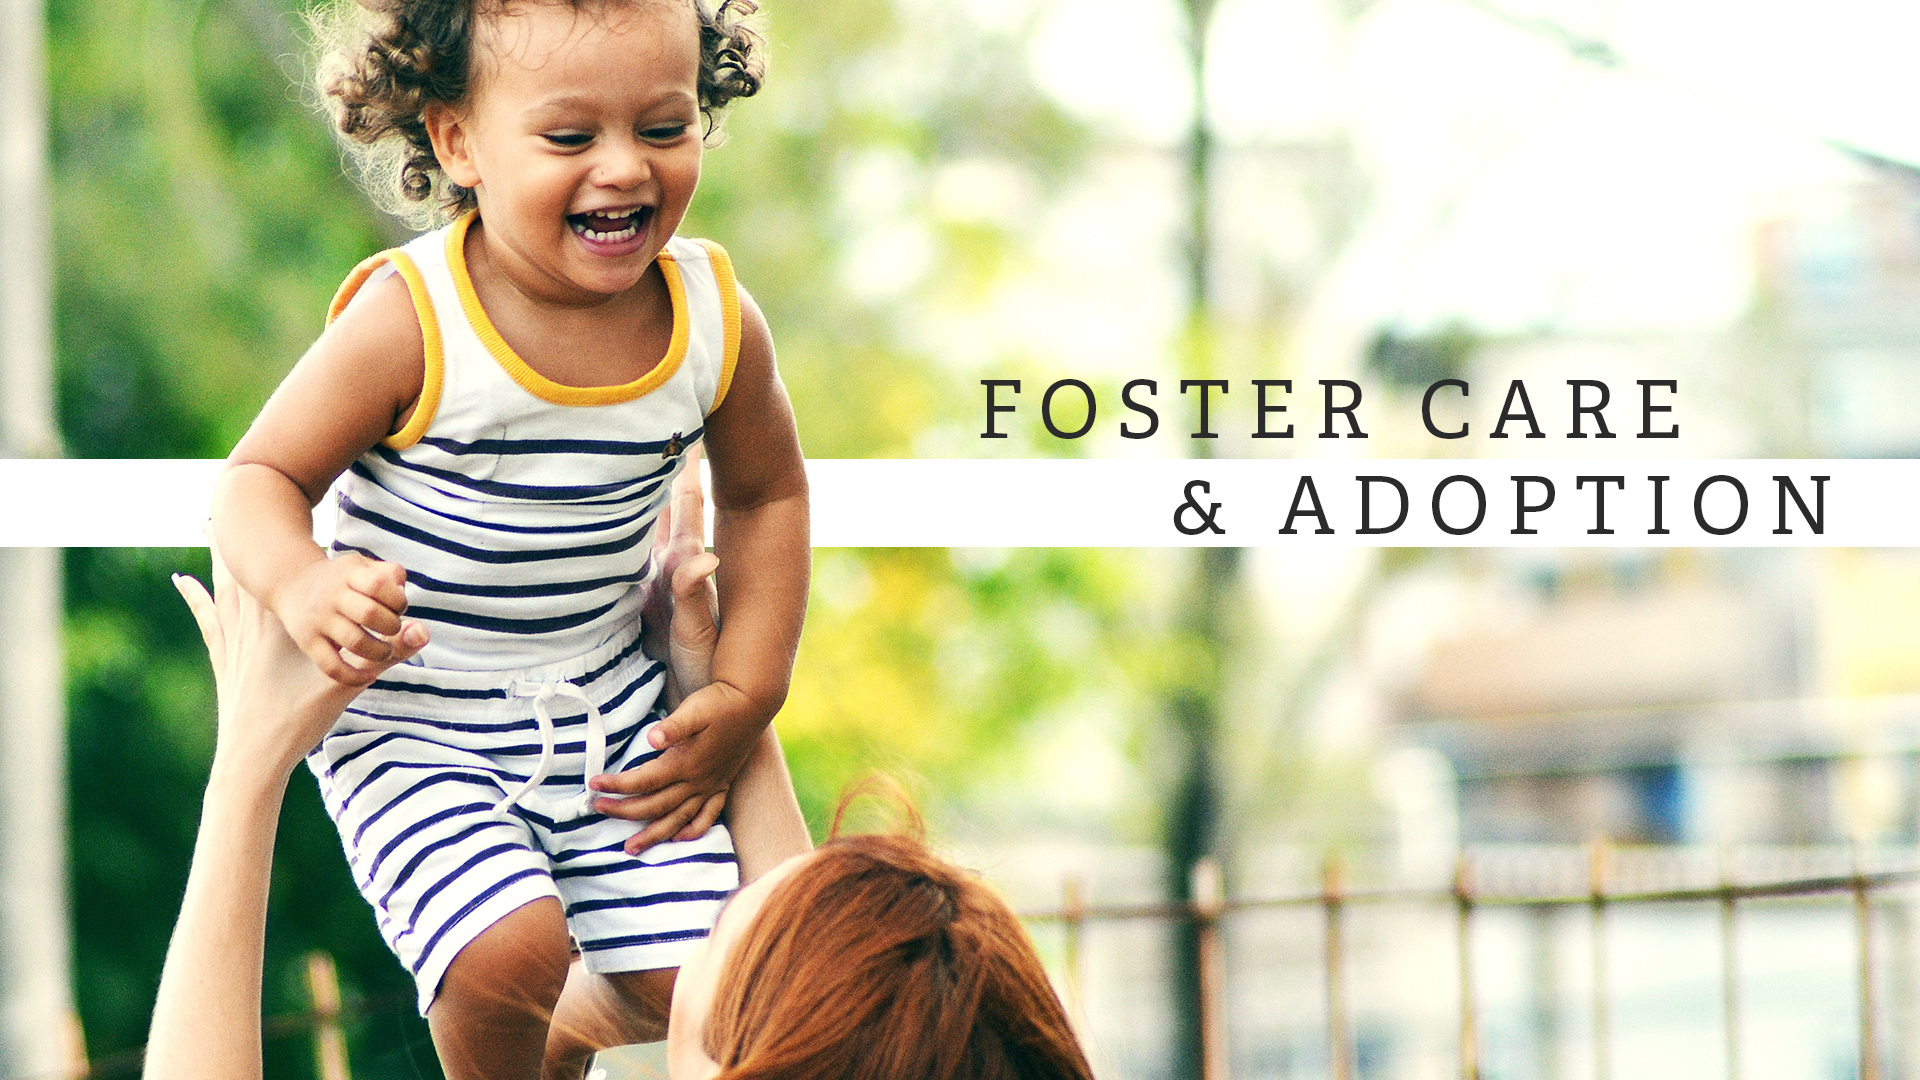 Foster Care & Adoption Story